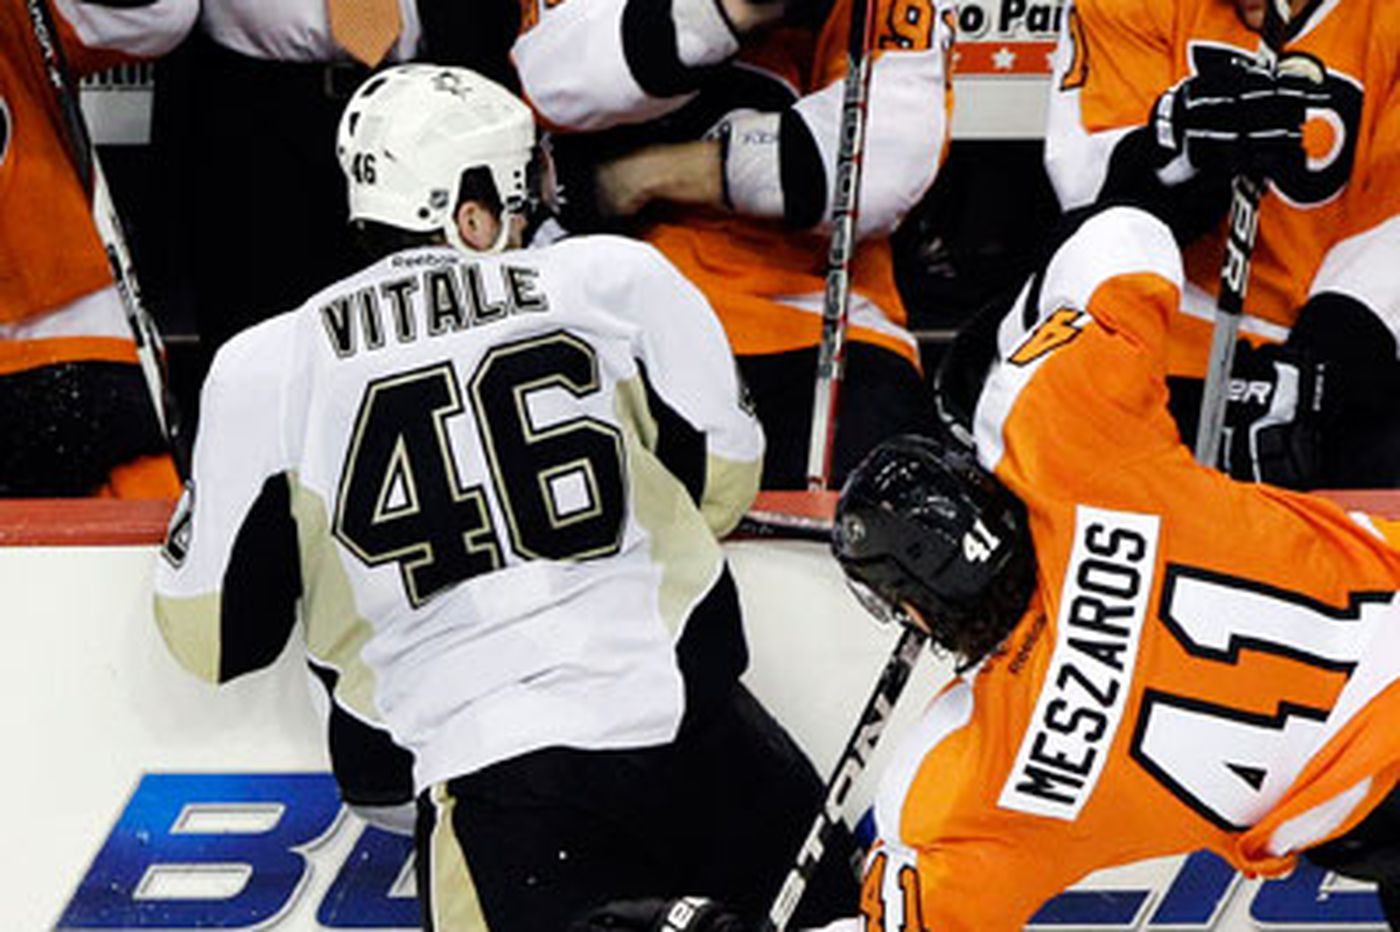 For Flyers, Grossmann, Briere out with injuries, Laviolette hit with fine